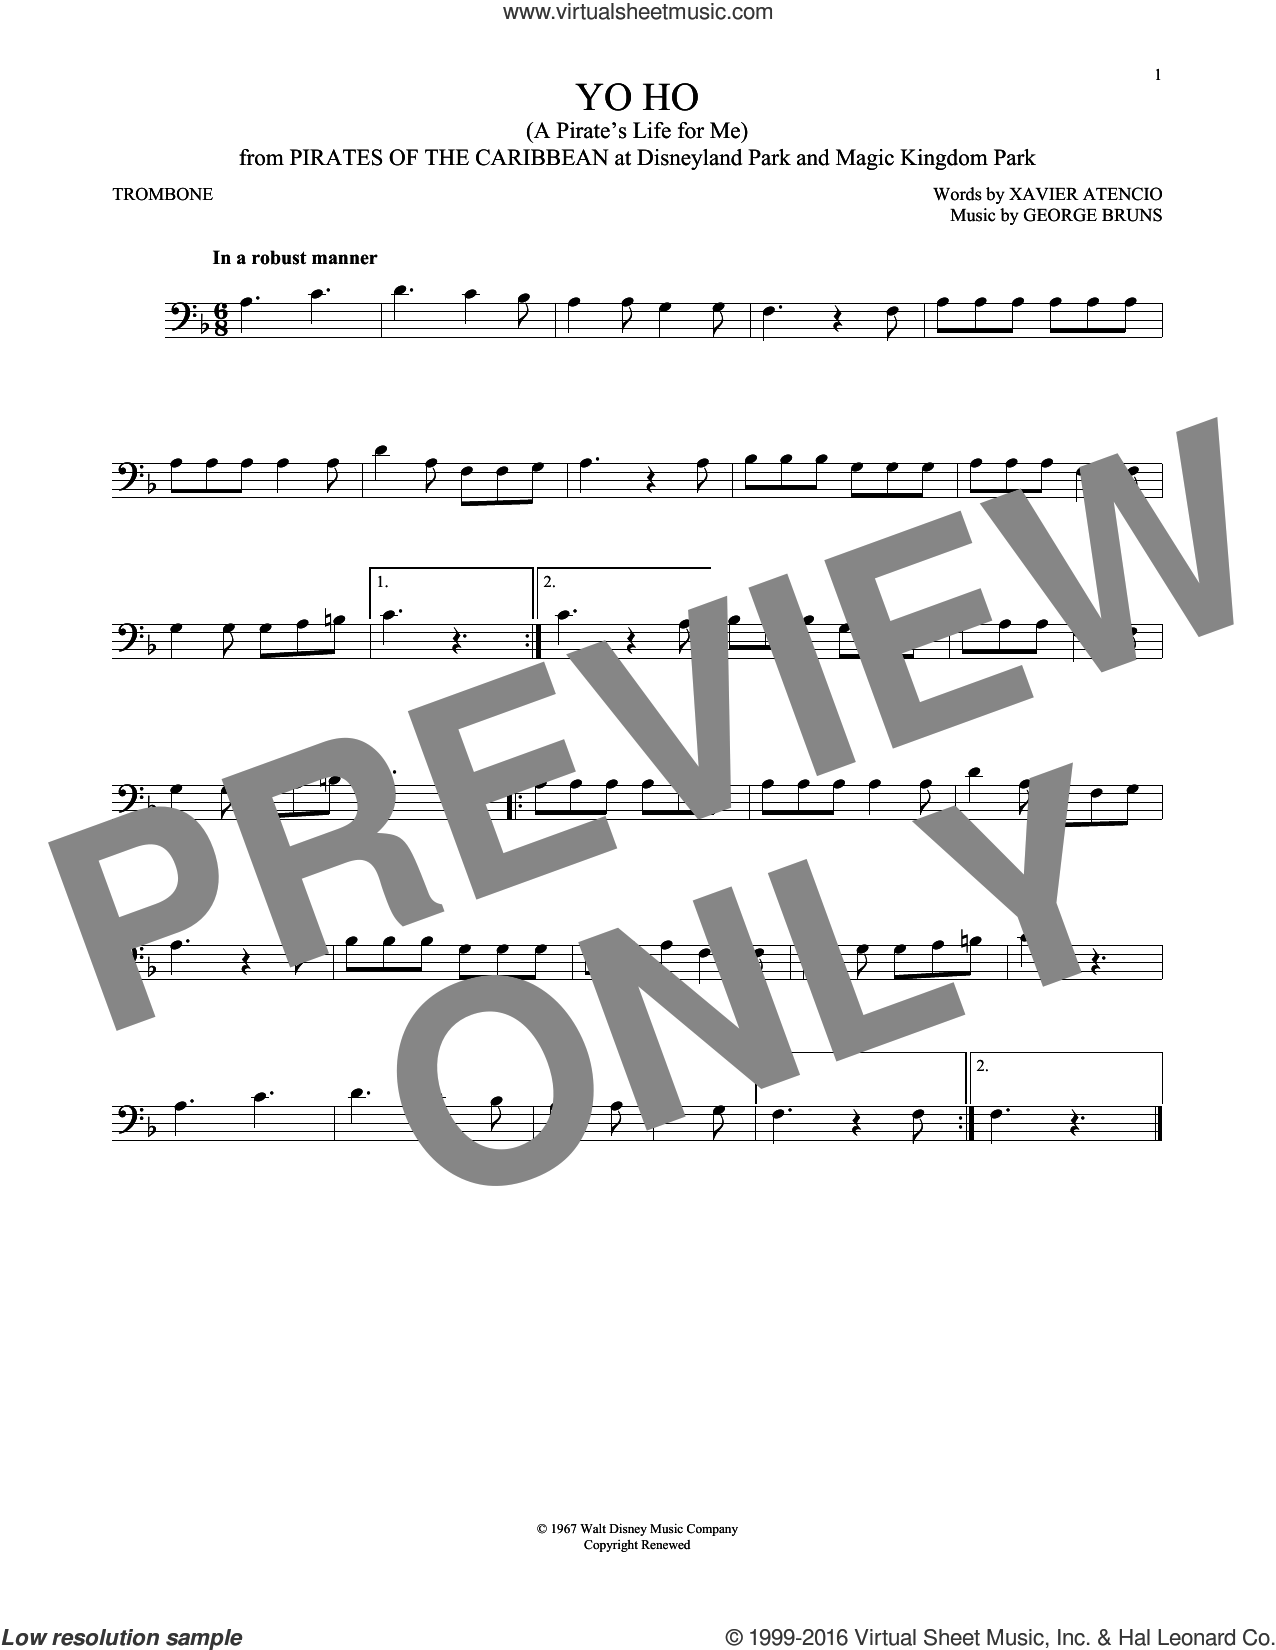 Yo Ho (A Pirate's Life For Me) sheet music for trombone solo by George Bruns and Xavier Atencio. Score Image Preview.